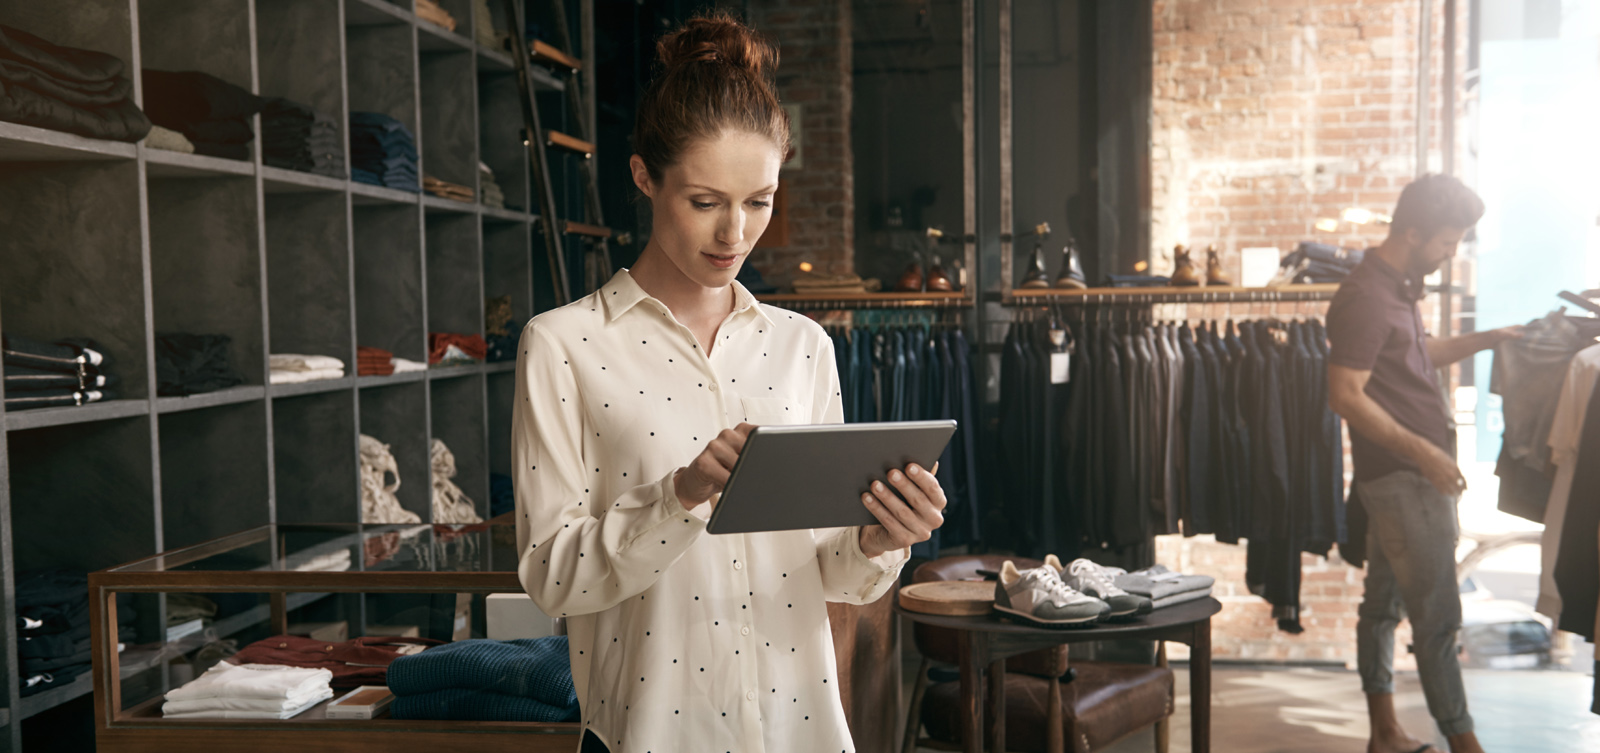 Preparing Your Store for Omnichannel Success